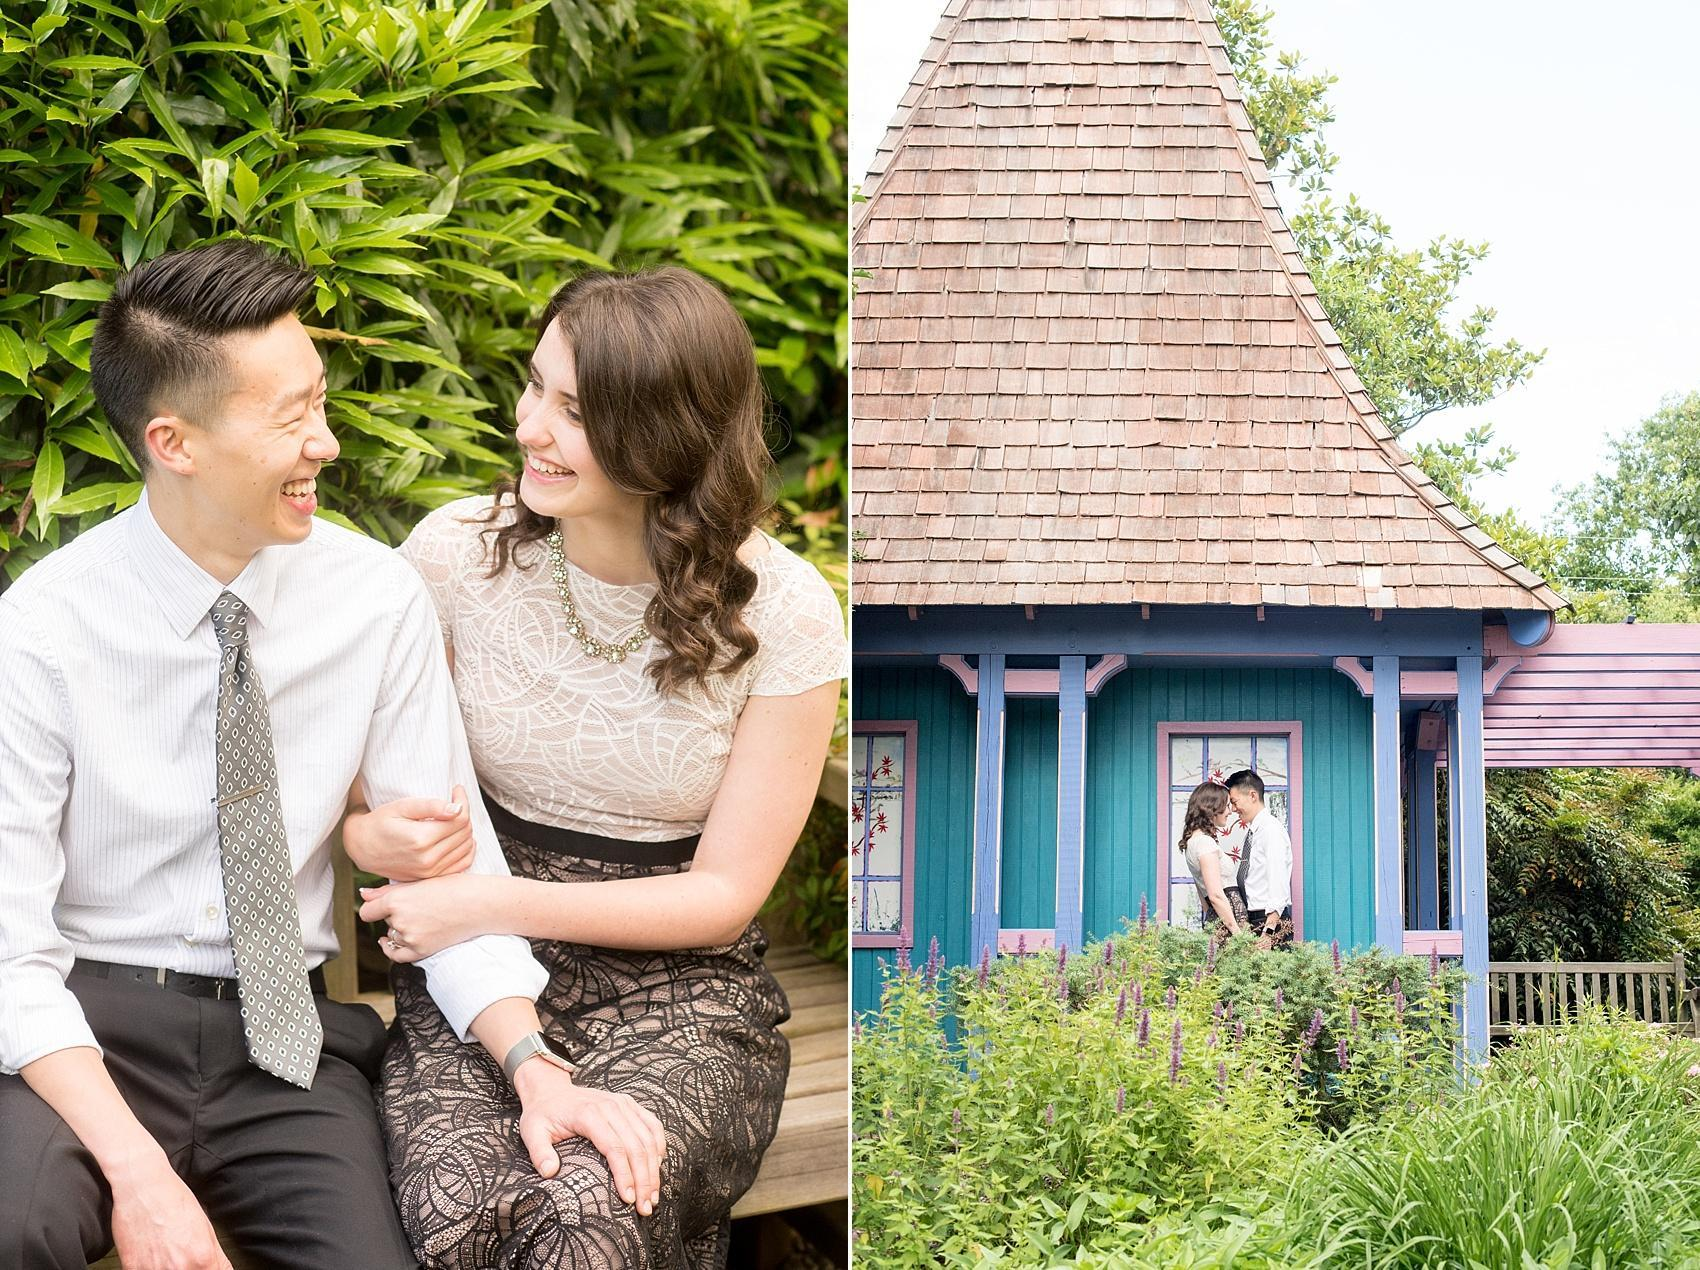 Raleigh North Carolina wedding photographer, Mikkel Paige Photography, photographs a colorful engagement session at Raulston Arboretum at NC State campus with Rent the Runway for the bride.